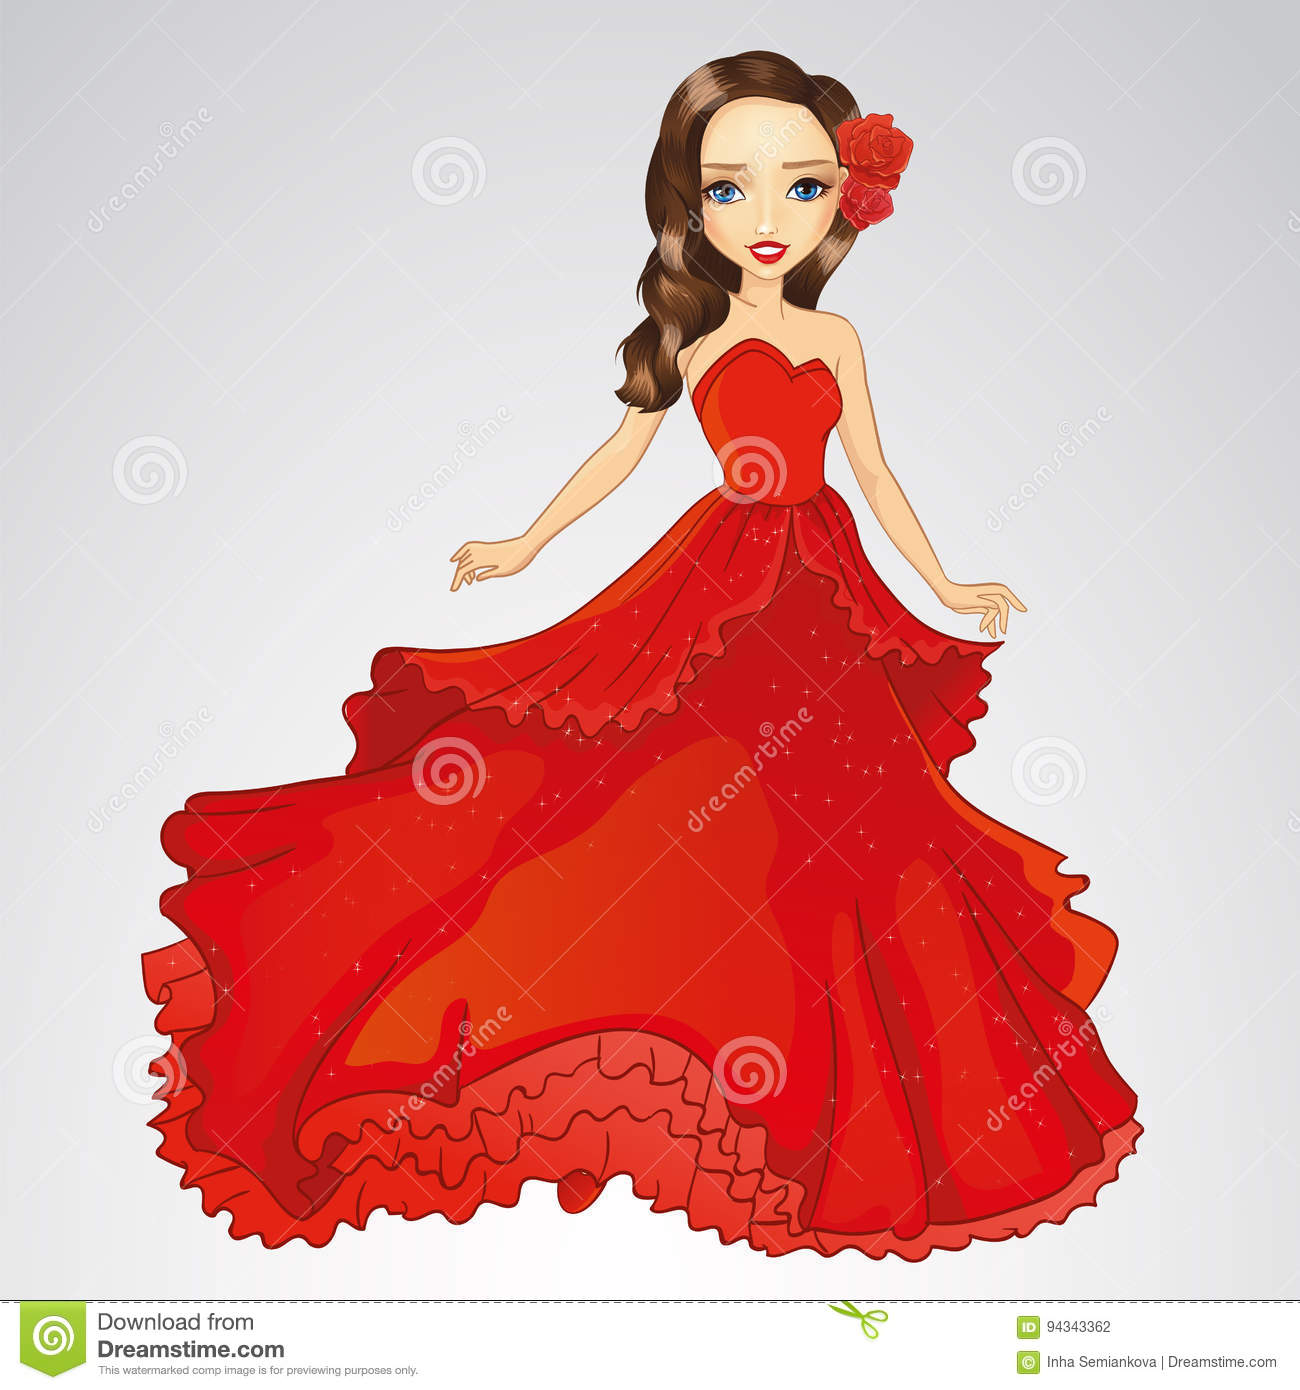 Beauty Princess In Red Dress Stock Vector , Illustration of